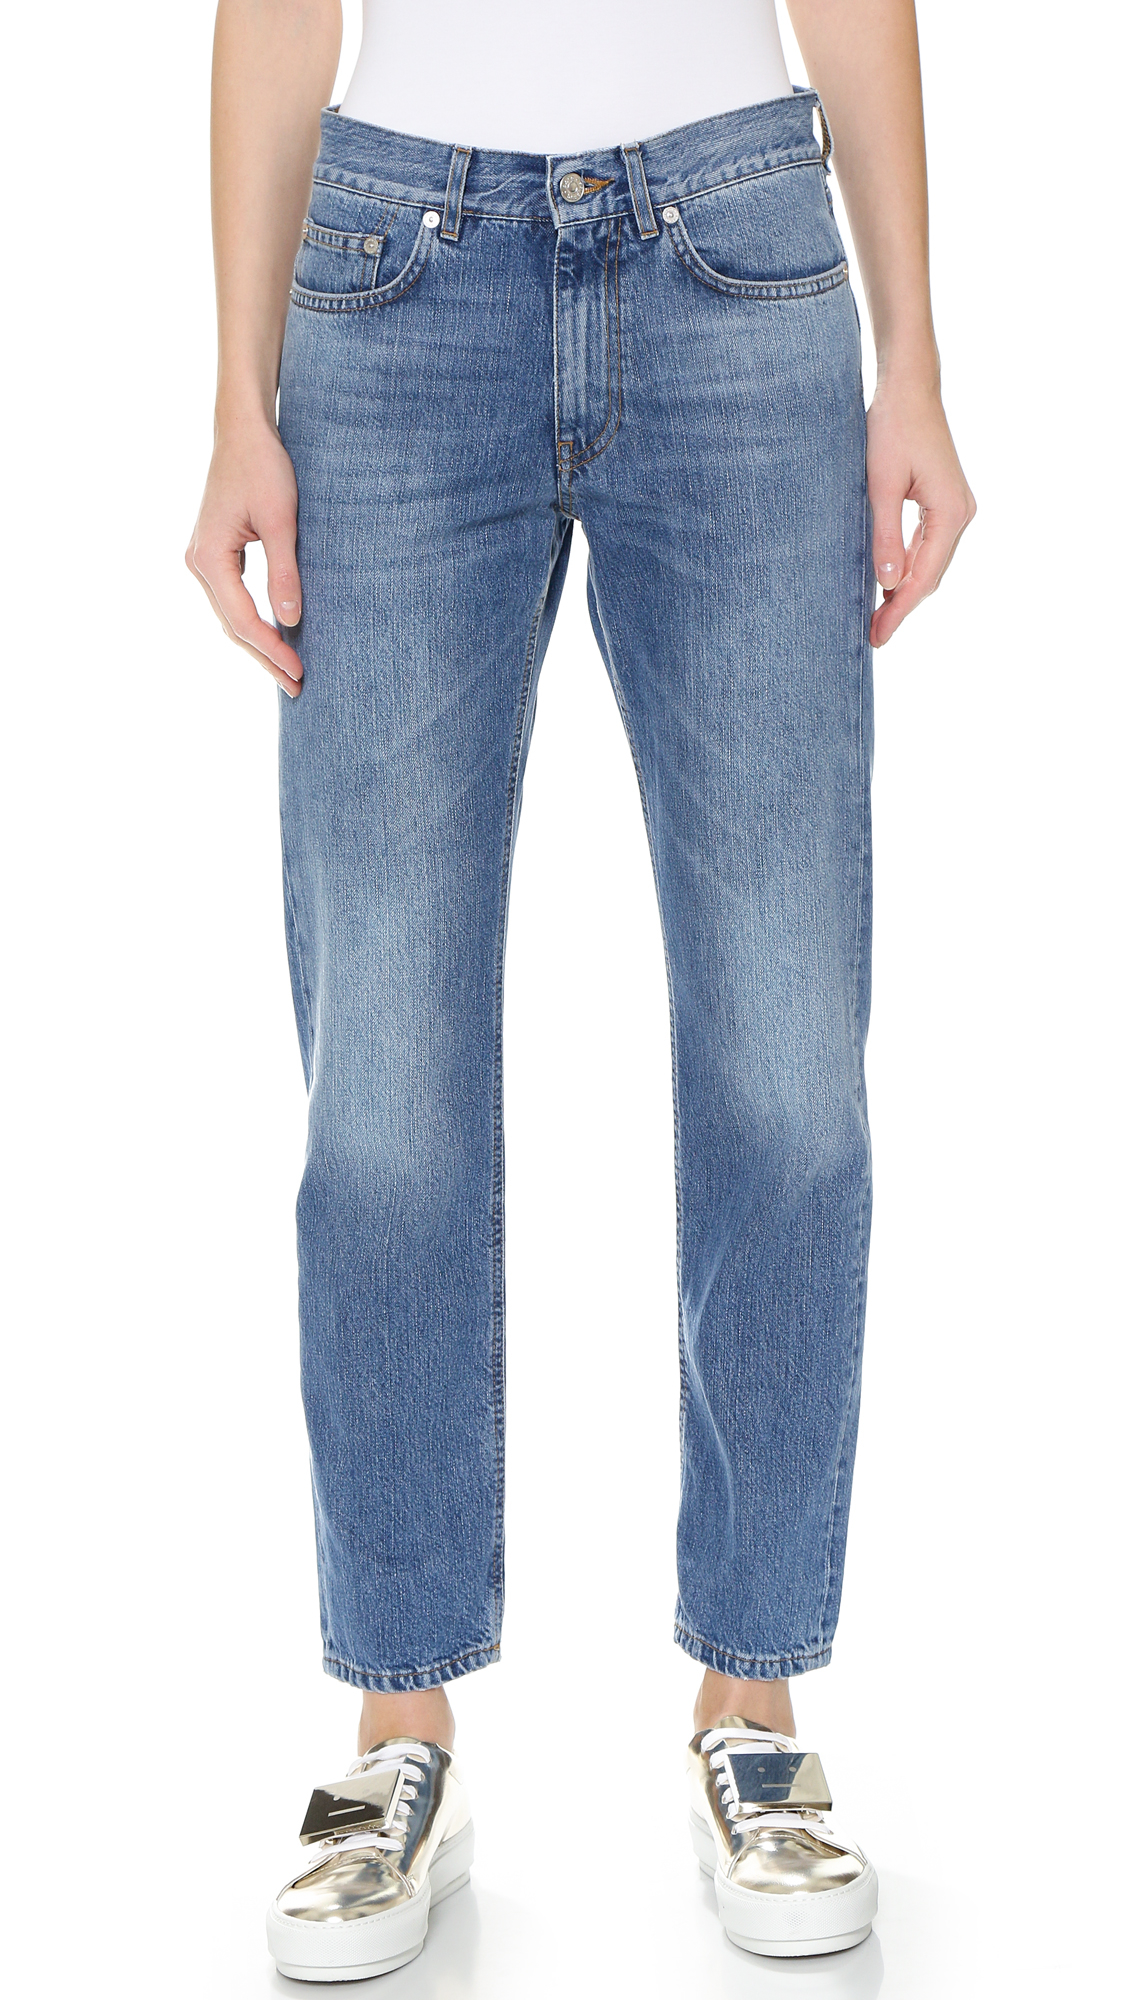 Lyst - Acne studios The Boy Jeans - Vintage in Blue